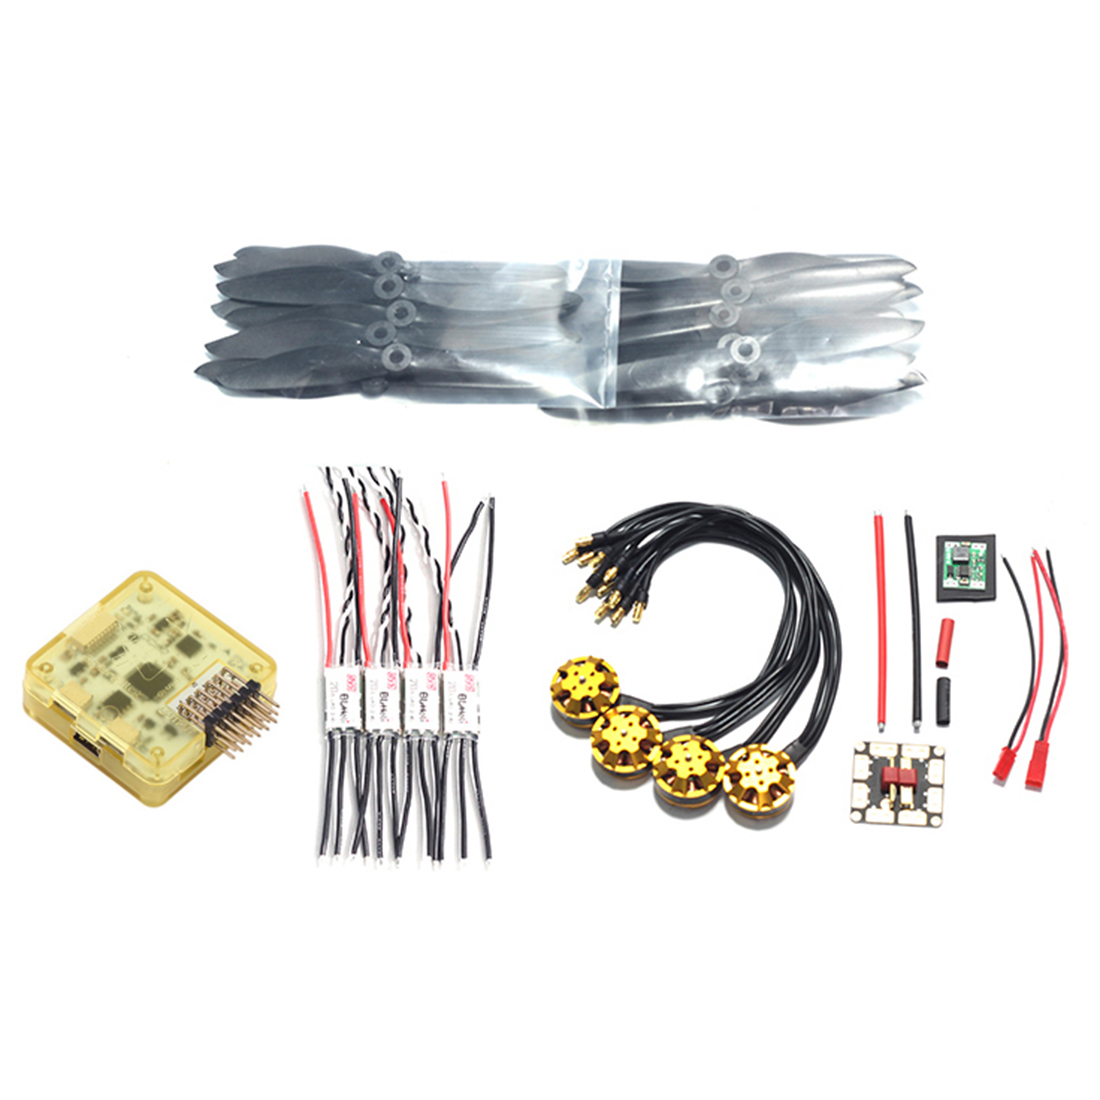 hight resolution of cc3d flight controller 2204 2400kv motor 6040 propeller blhli 20a esc 5v step down module 35 35 lay plate 14awg silicon cable in drone accessories kits